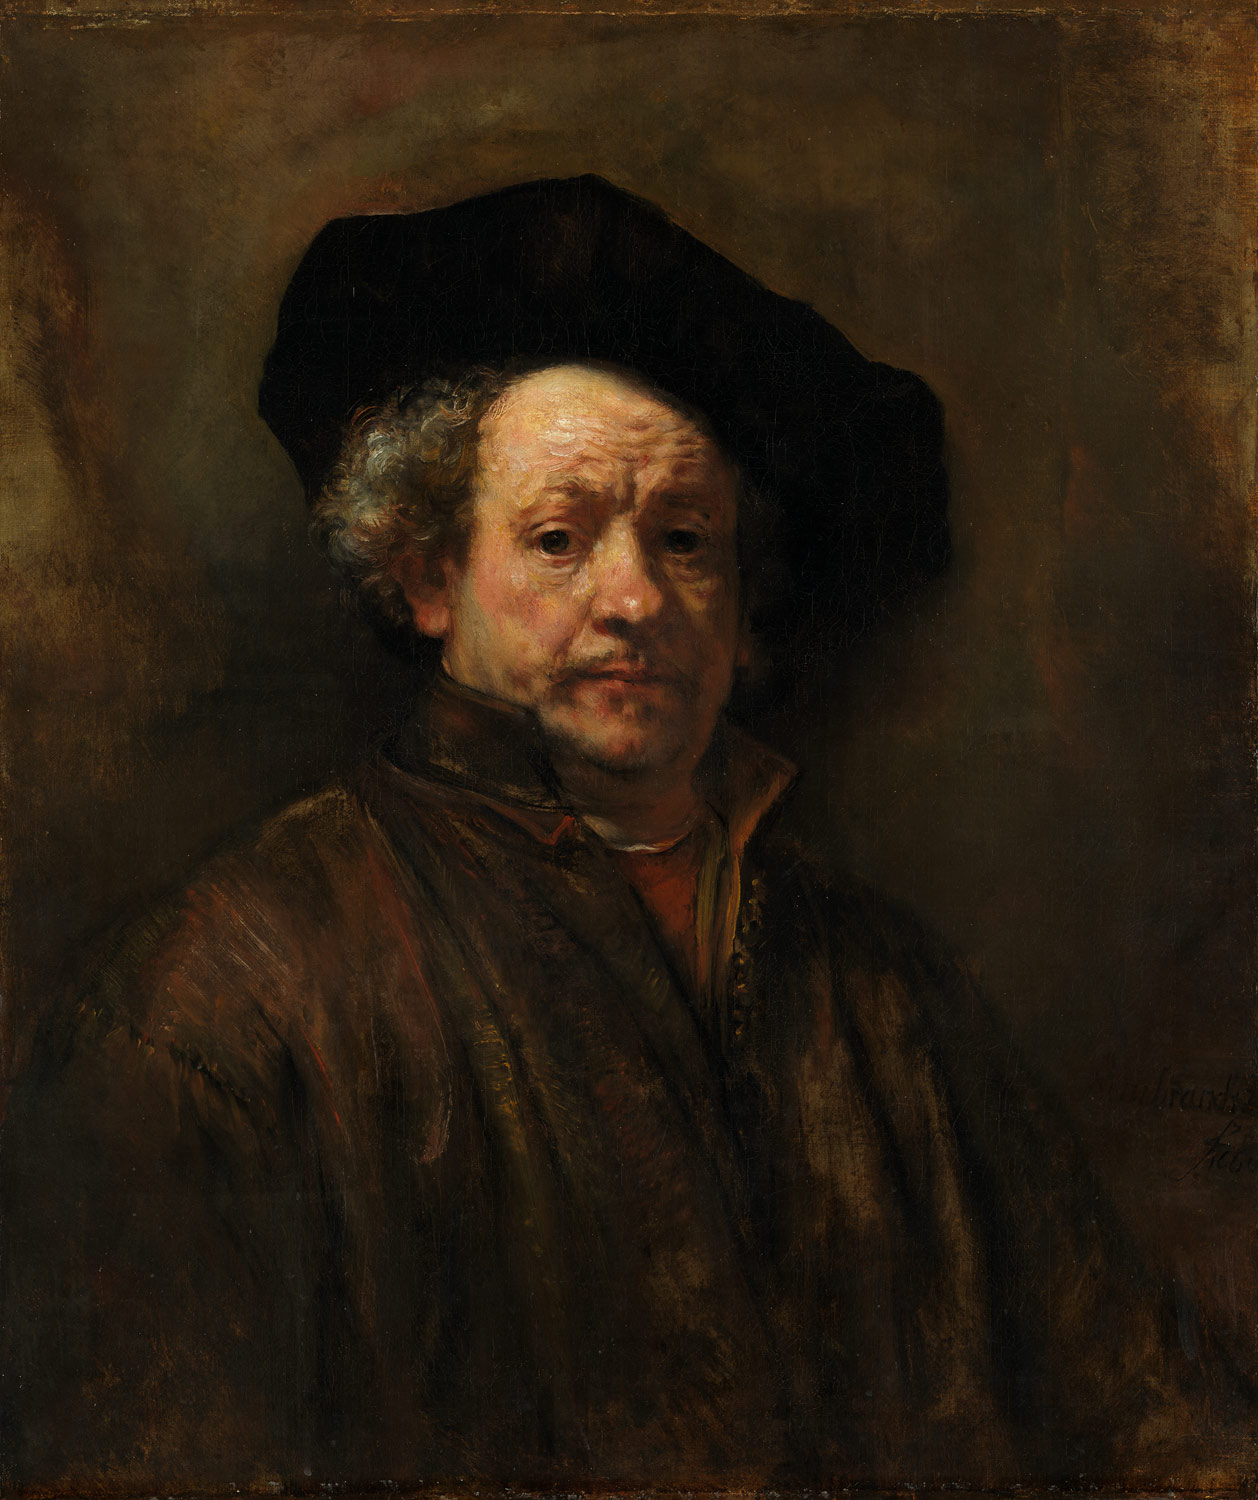 rembrandt van rijn paintings essay heilbrunn self portrait